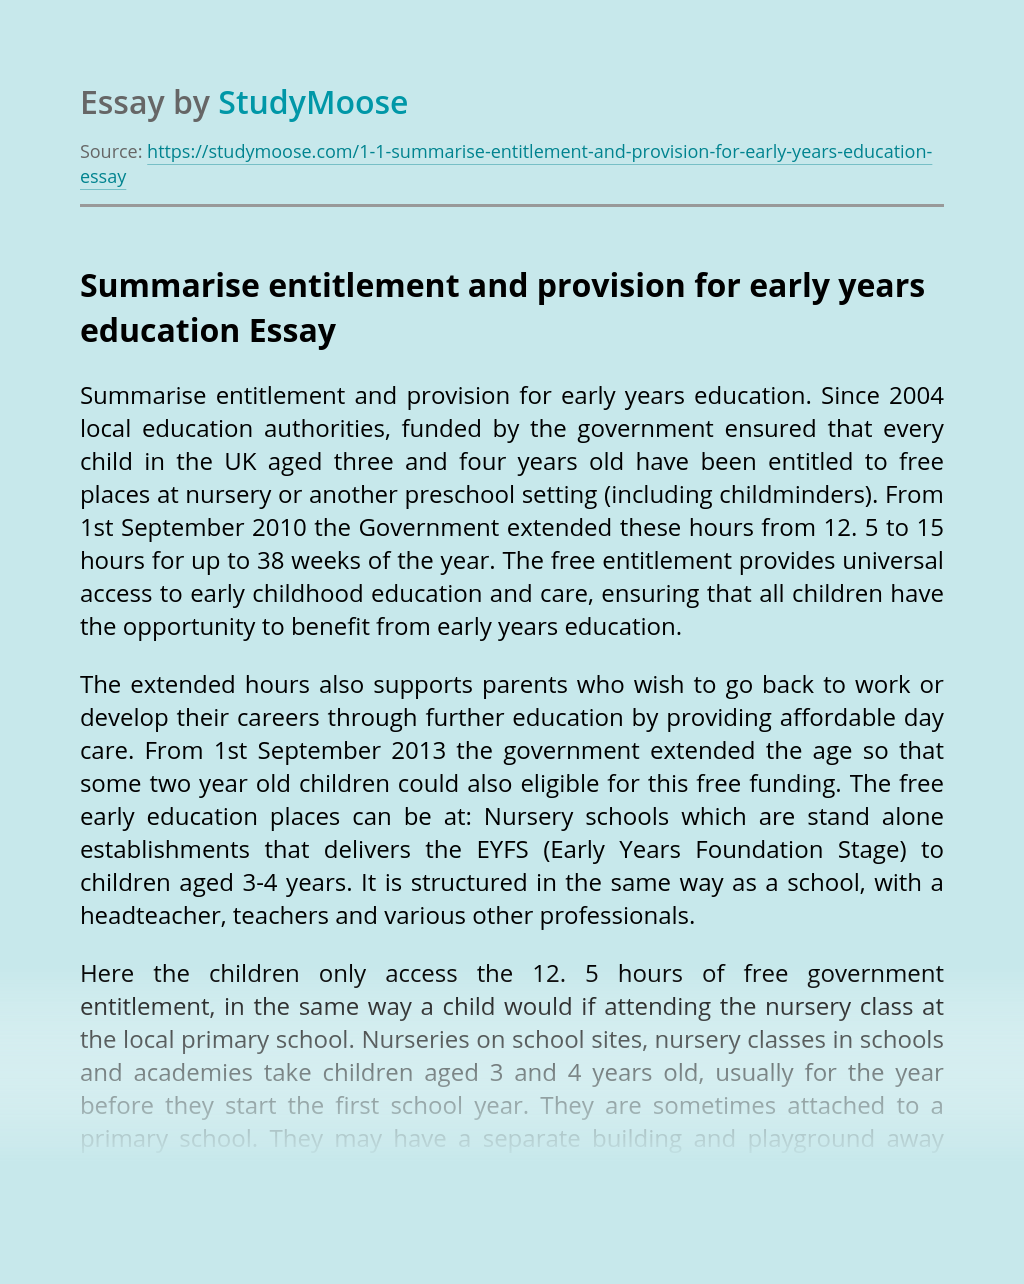 Summarise entitlement and provision for early years education